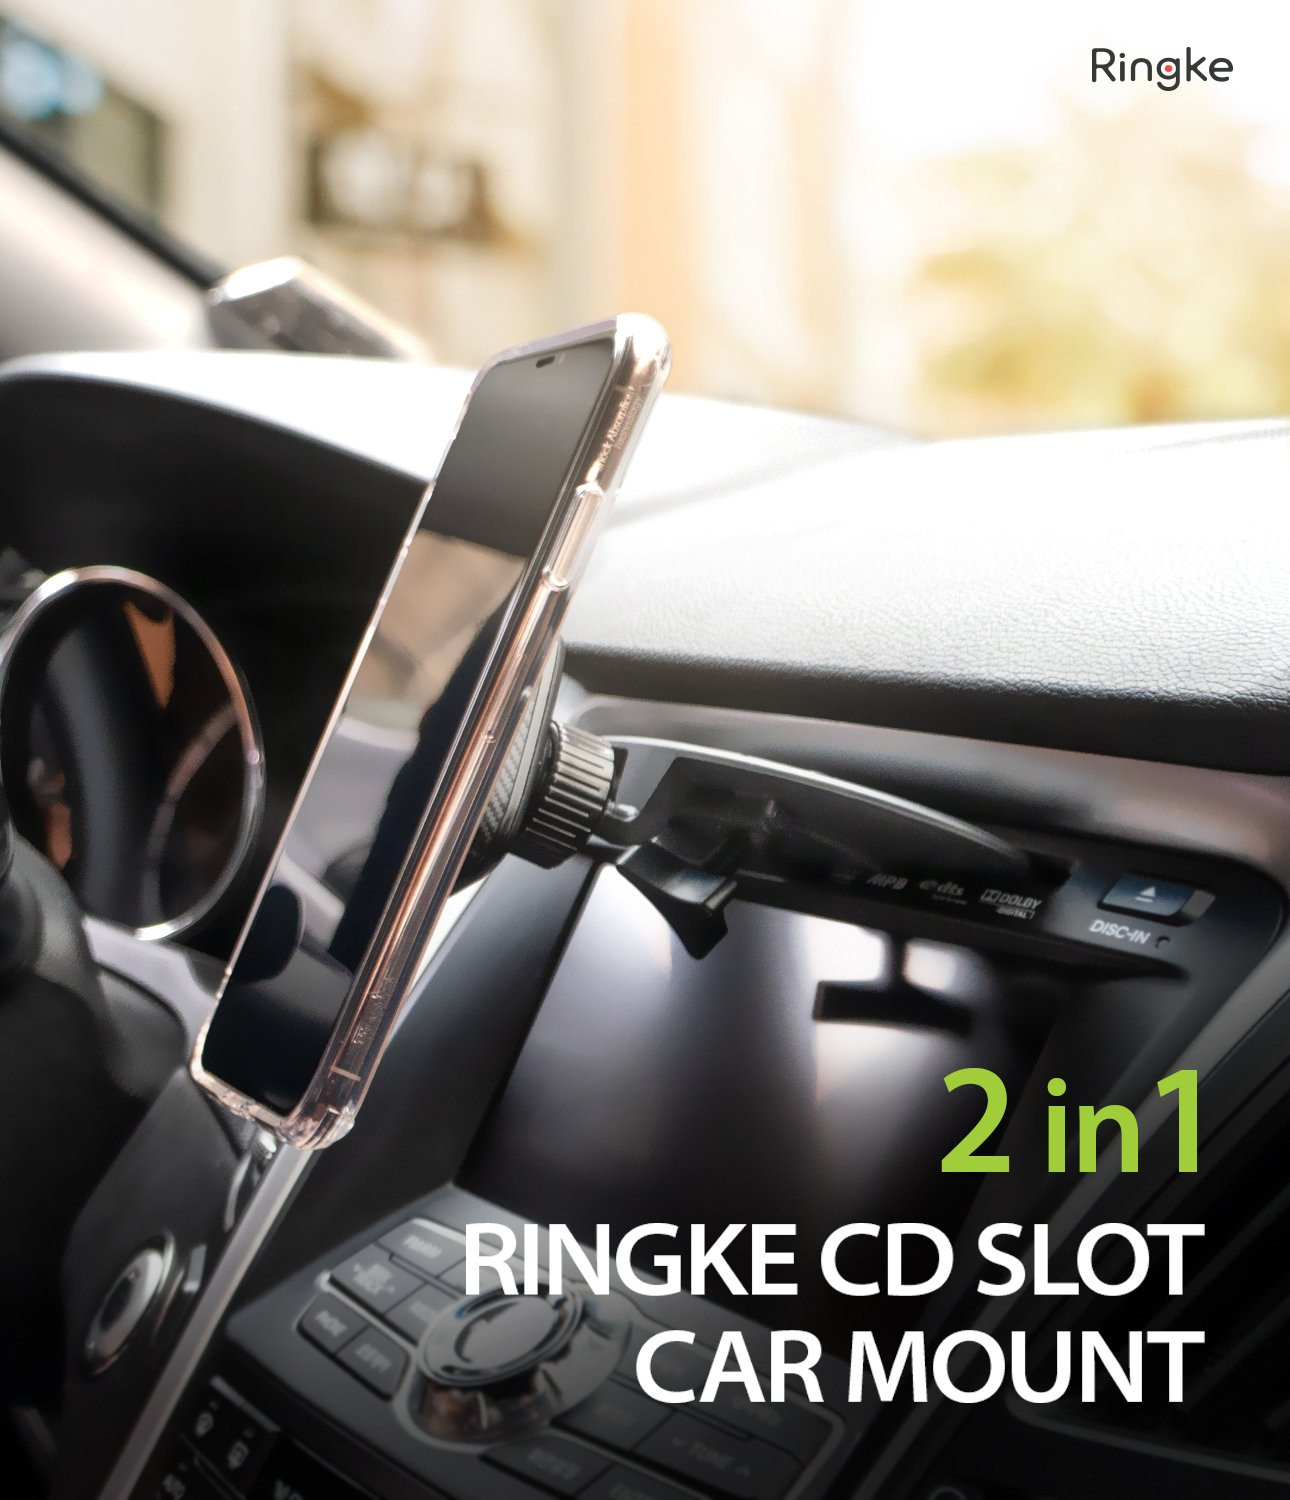 ringke cd slot 2 in 1 car mount